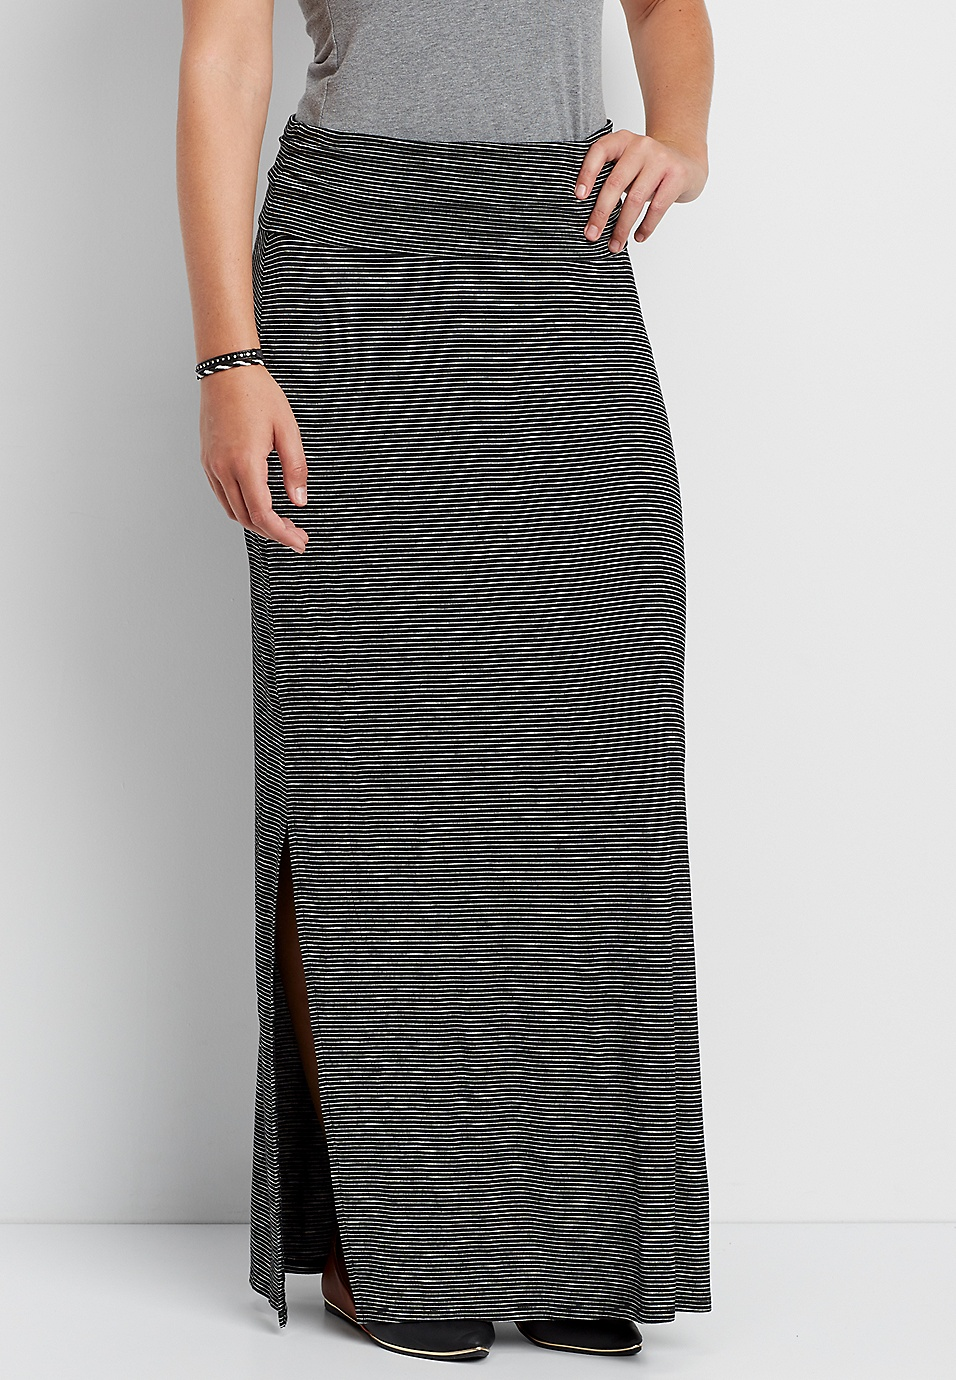 deee2c8ee striped maxi skirt with foldover waistband | maurices